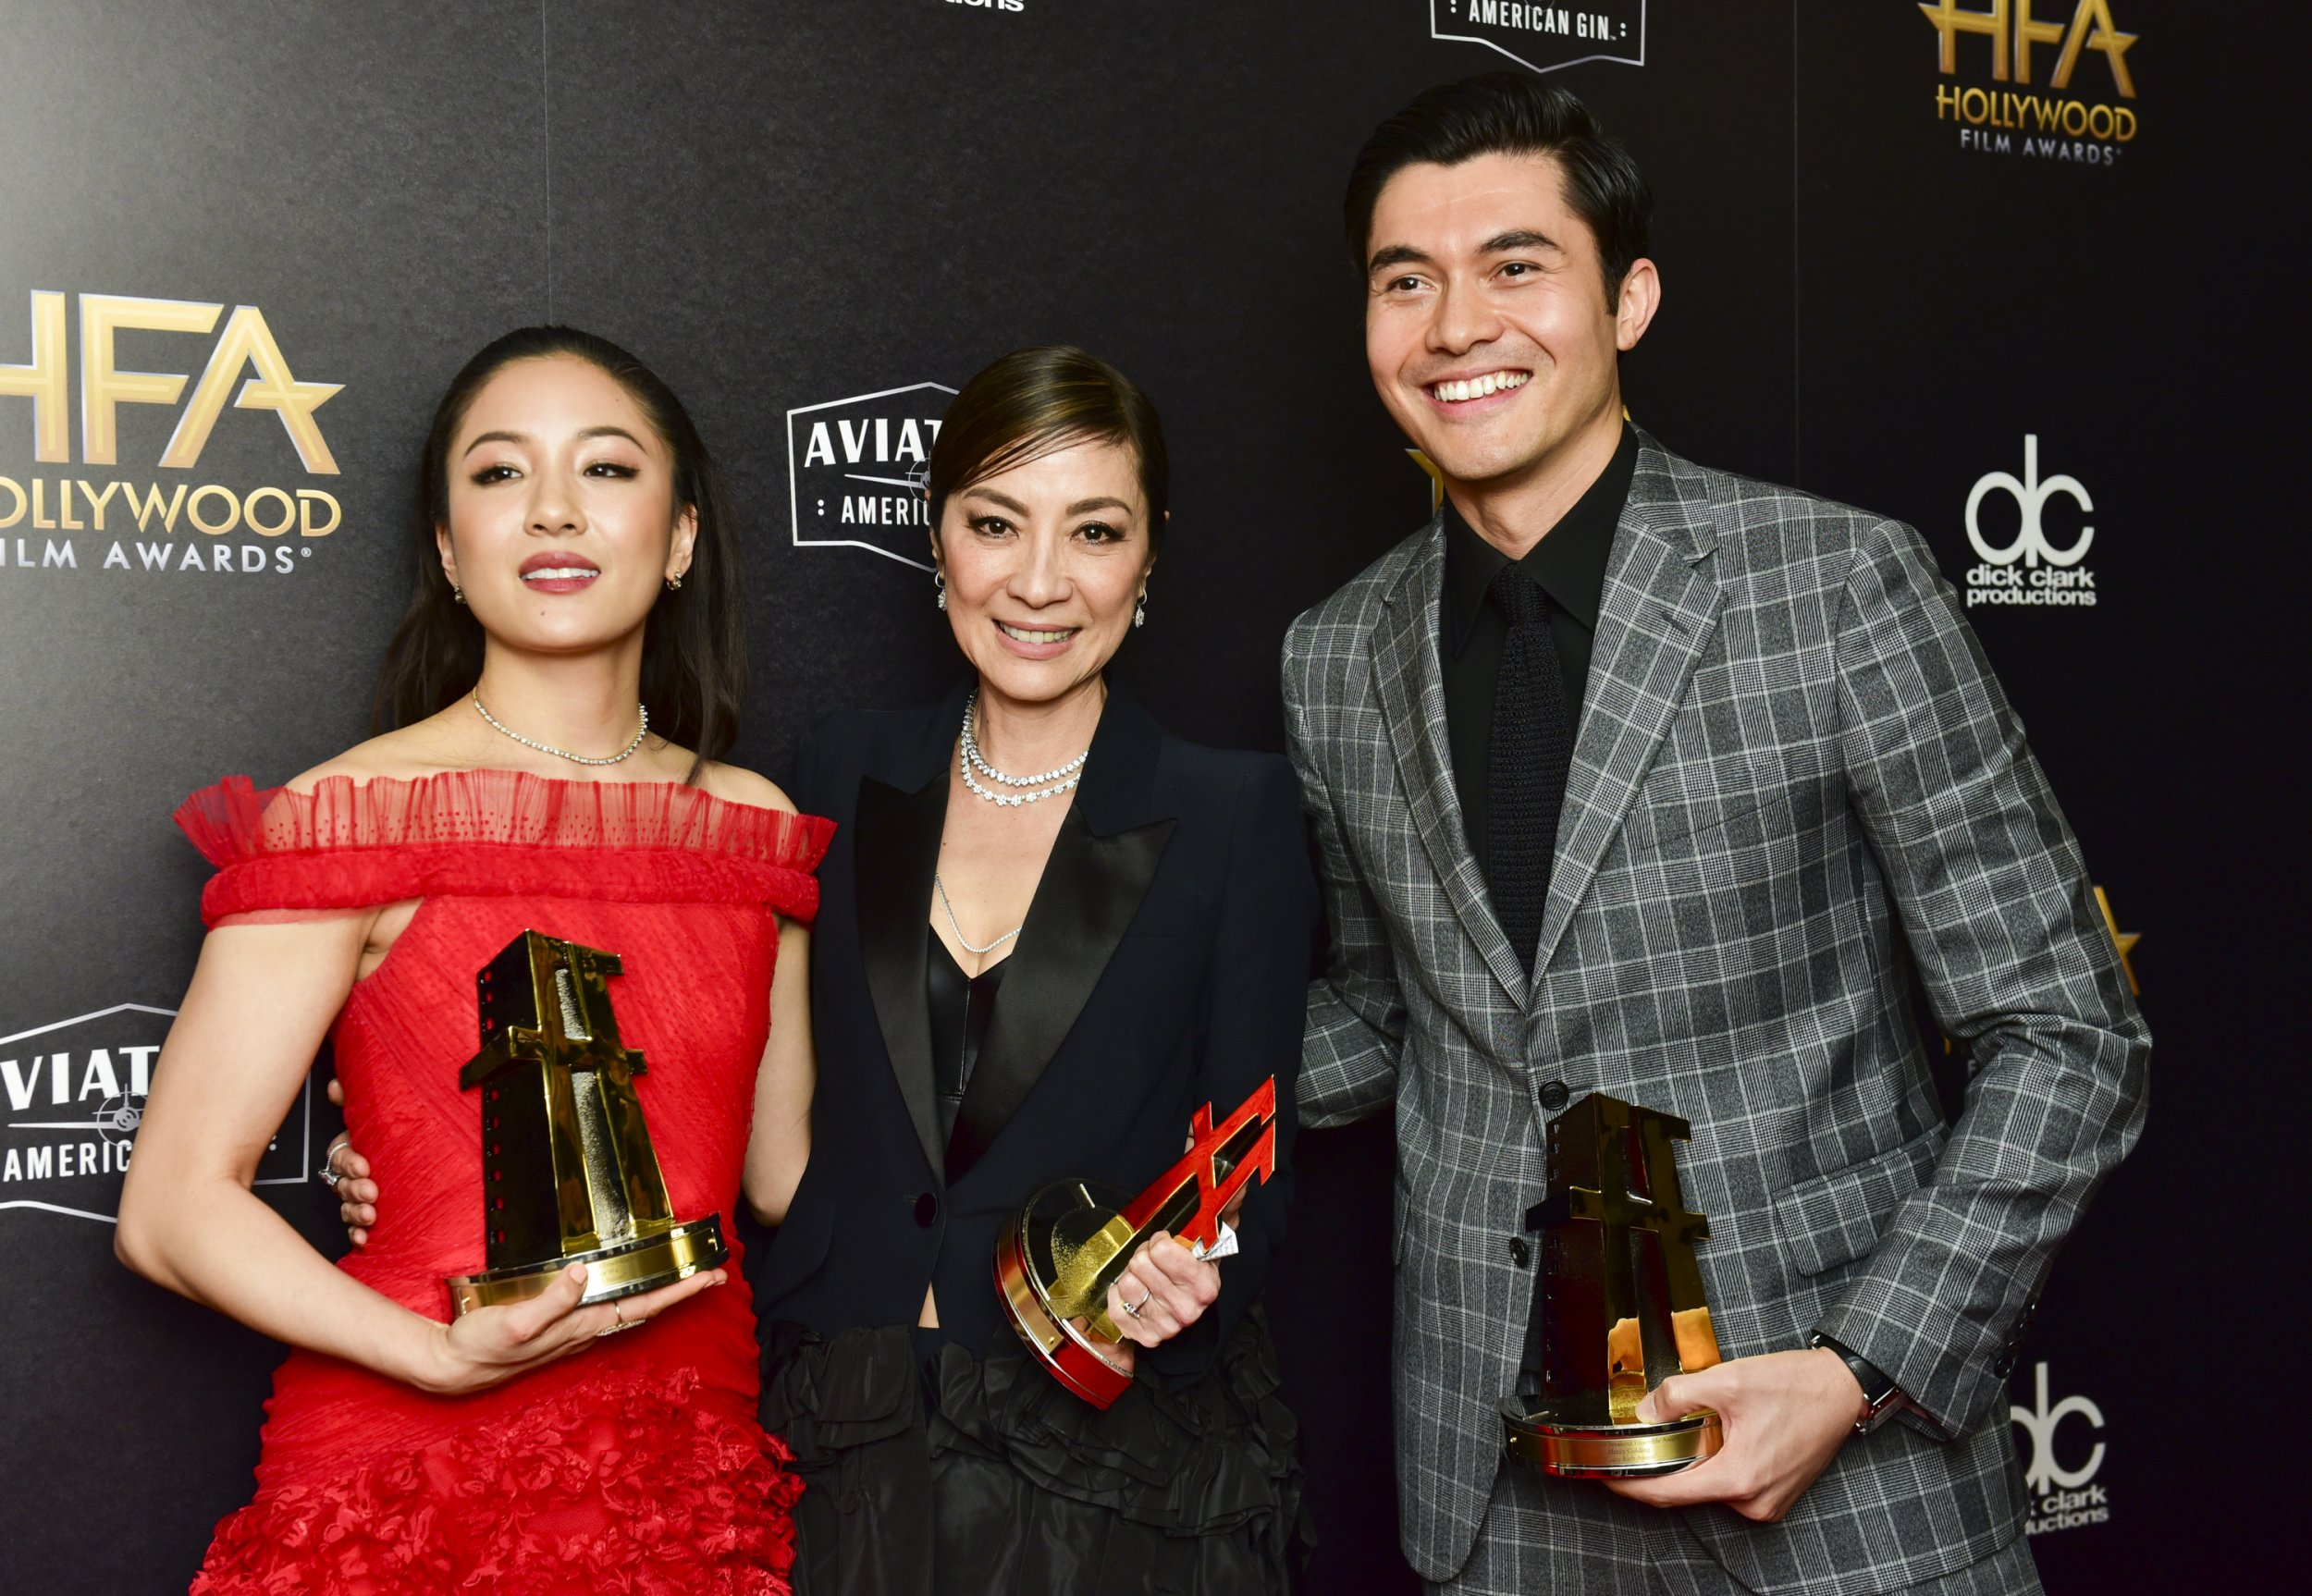 Constance Wu, Golden Globes, Crazy Rich Asians, Best Actress, Hollywood 2